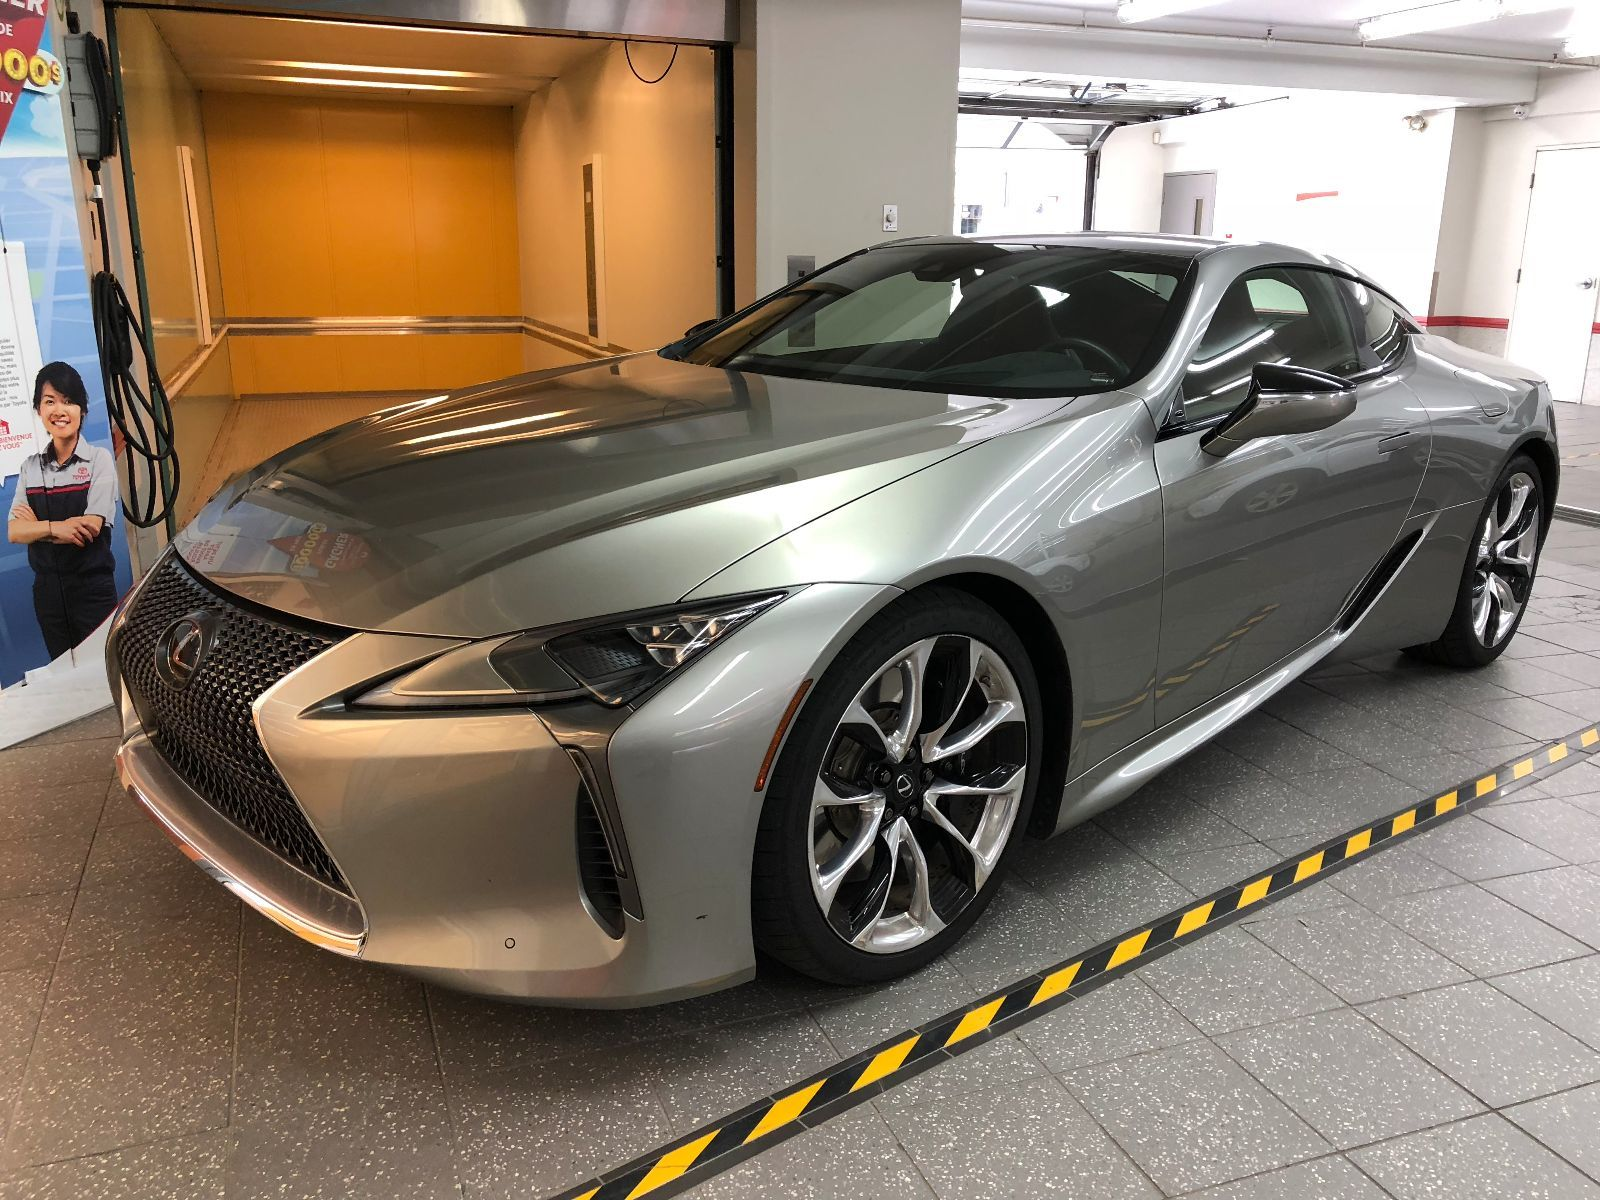 lexus lc lc 500 groupe performance 2018 usag vendre montr al 105900 0 chass toyota. Black Bedroom Furniture Sets. Home Design Ideas